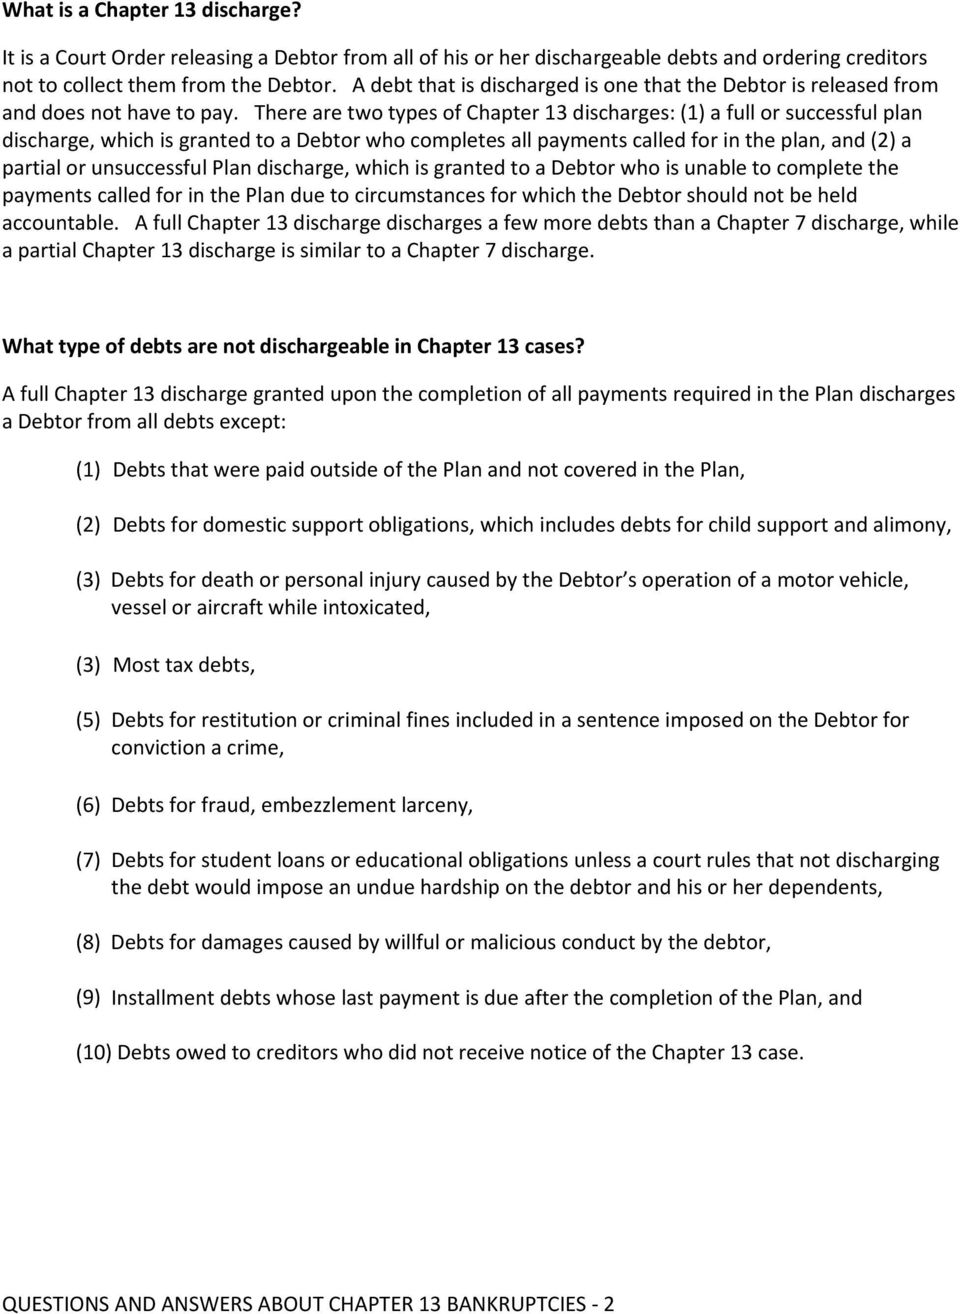 There are two types of Chapter 13 discharges: (1) a full or successful plan discharge, which is granted to a Debtor who completes all payments called for in the plan, and (2) a partial or